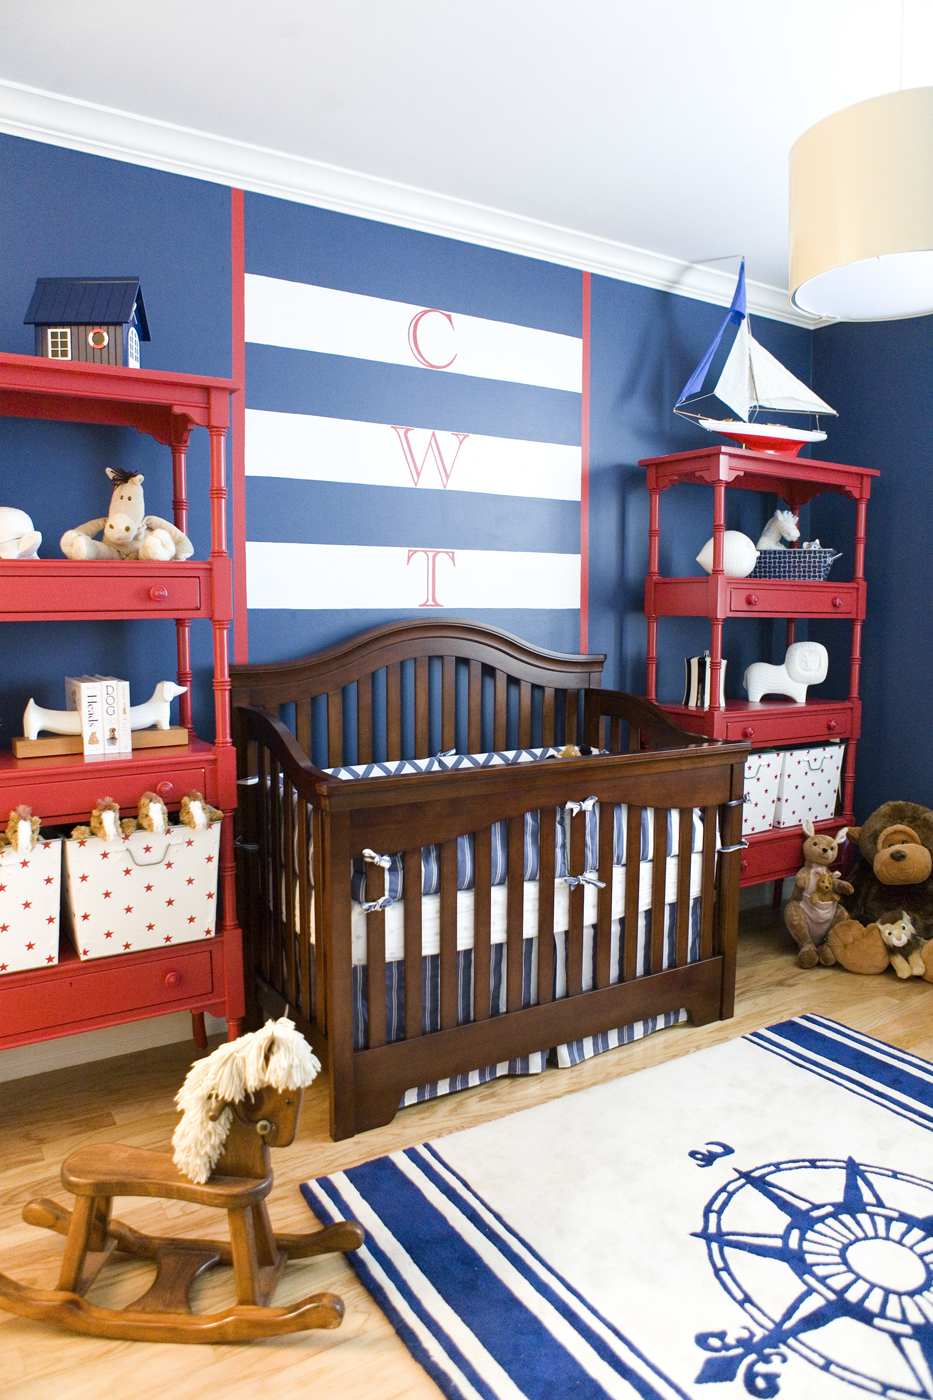 Nautical Themed Bedroom Decor: Behind The Scenes With HGTV's Erinn Valencich